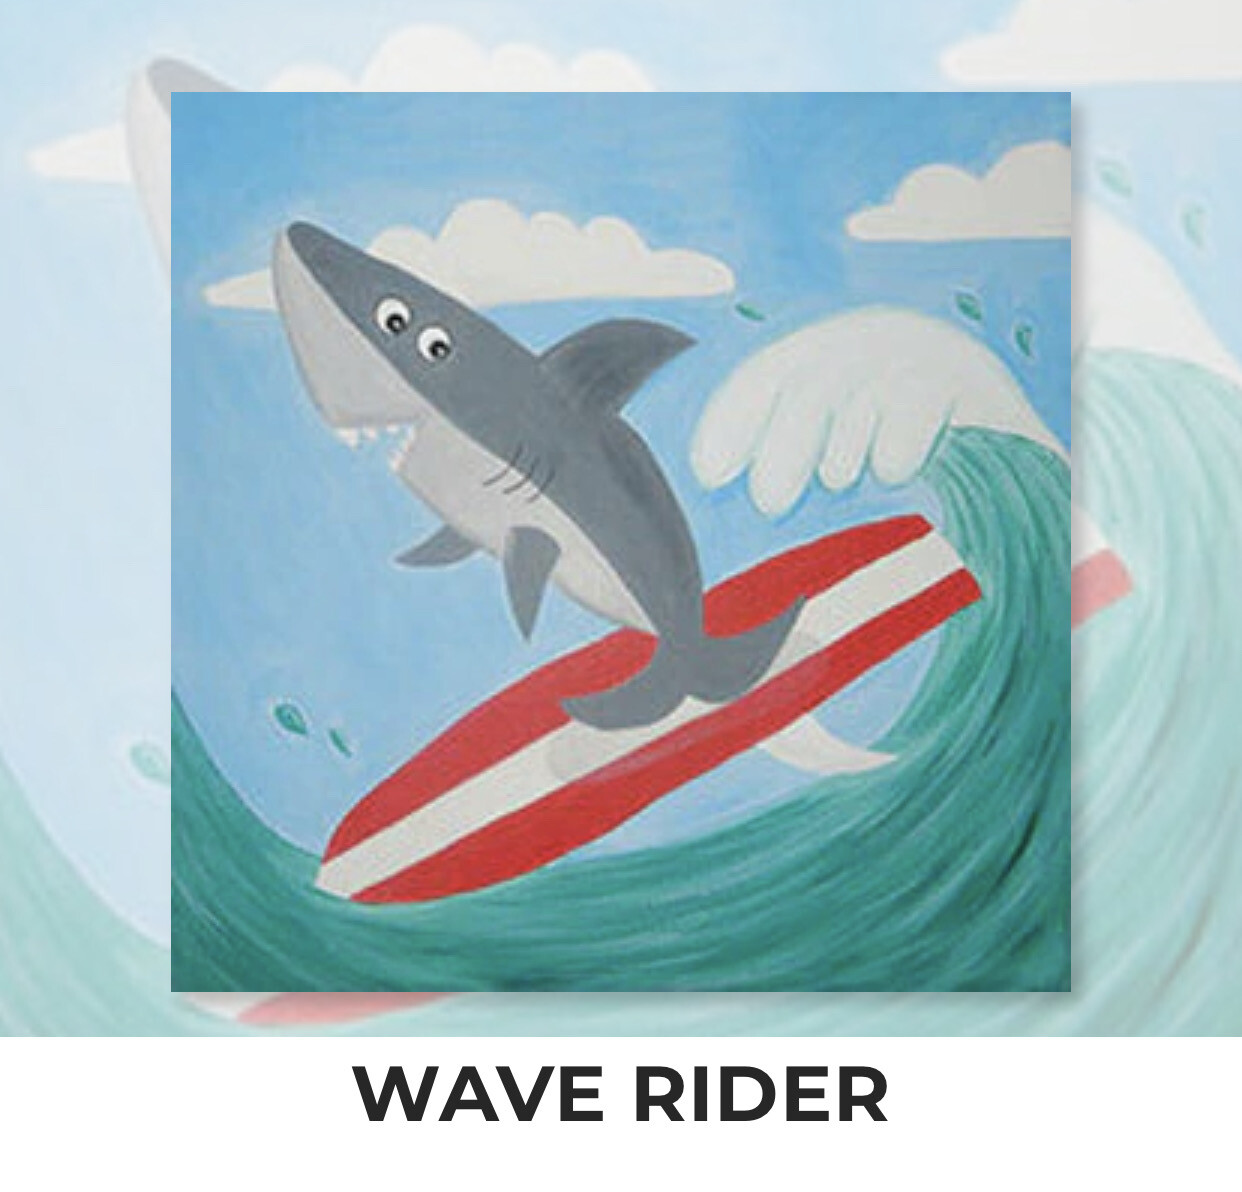 Wave Rider Shark KIDS Acrylic Paint On Canvas DIY Art Kit - 3 Week Special Order